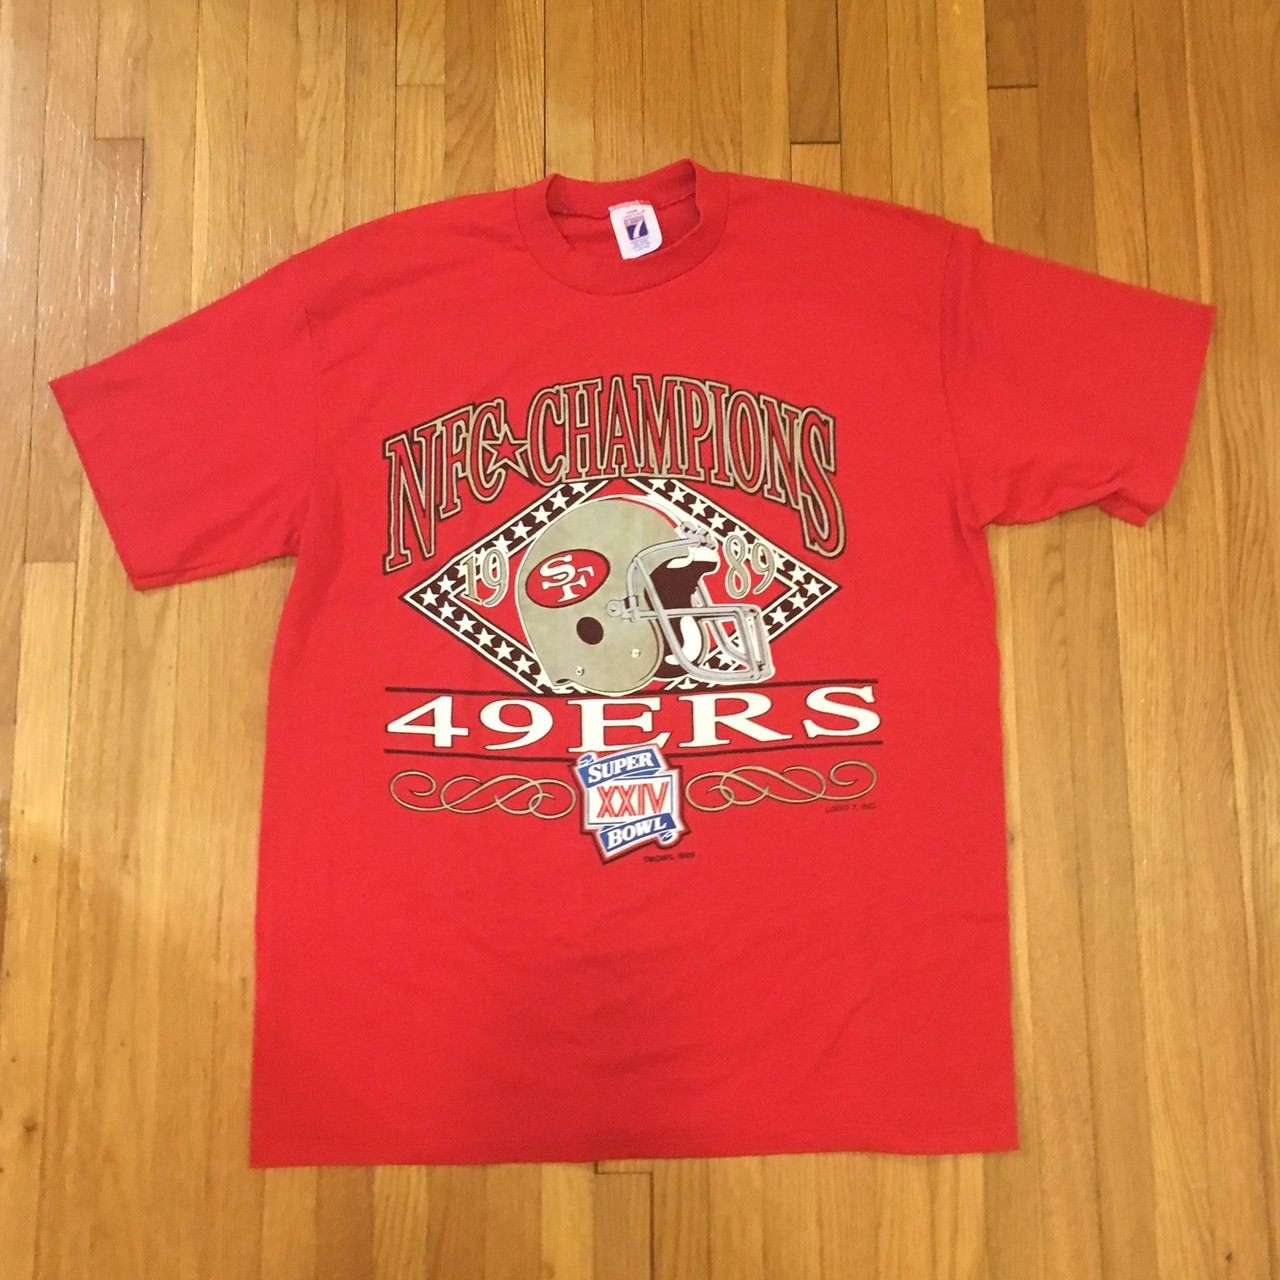 Vintage 1989 NFC Champions San Francisco 49ers football tee - Depop eb7a85716